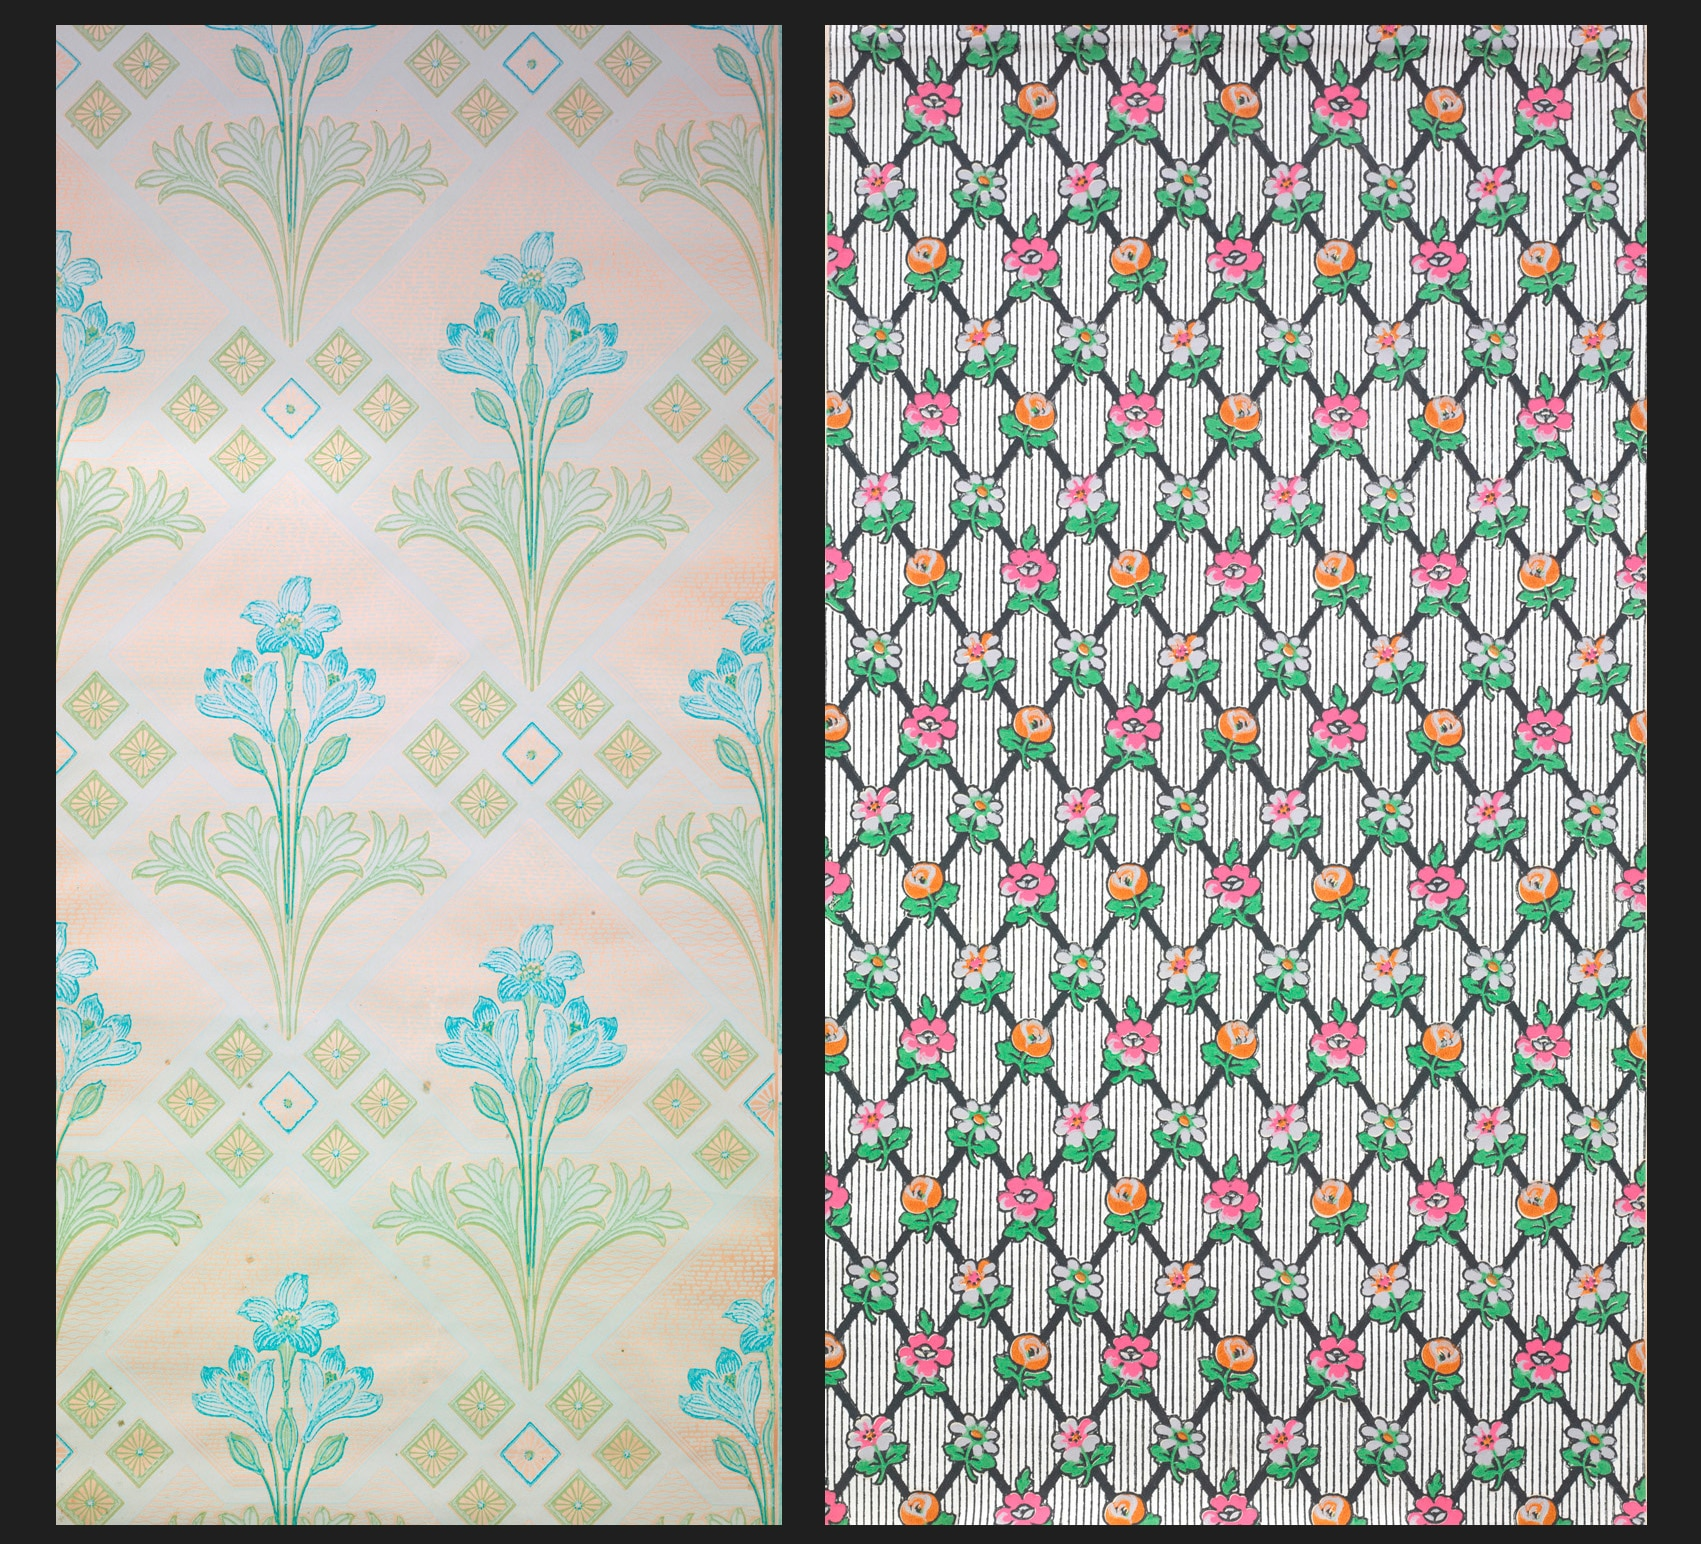 "Wallpaper made by the Zurich firm ""Zum Morgenstern"" from 1900 (left) and Frauenfeld (right) from 1910-1915."